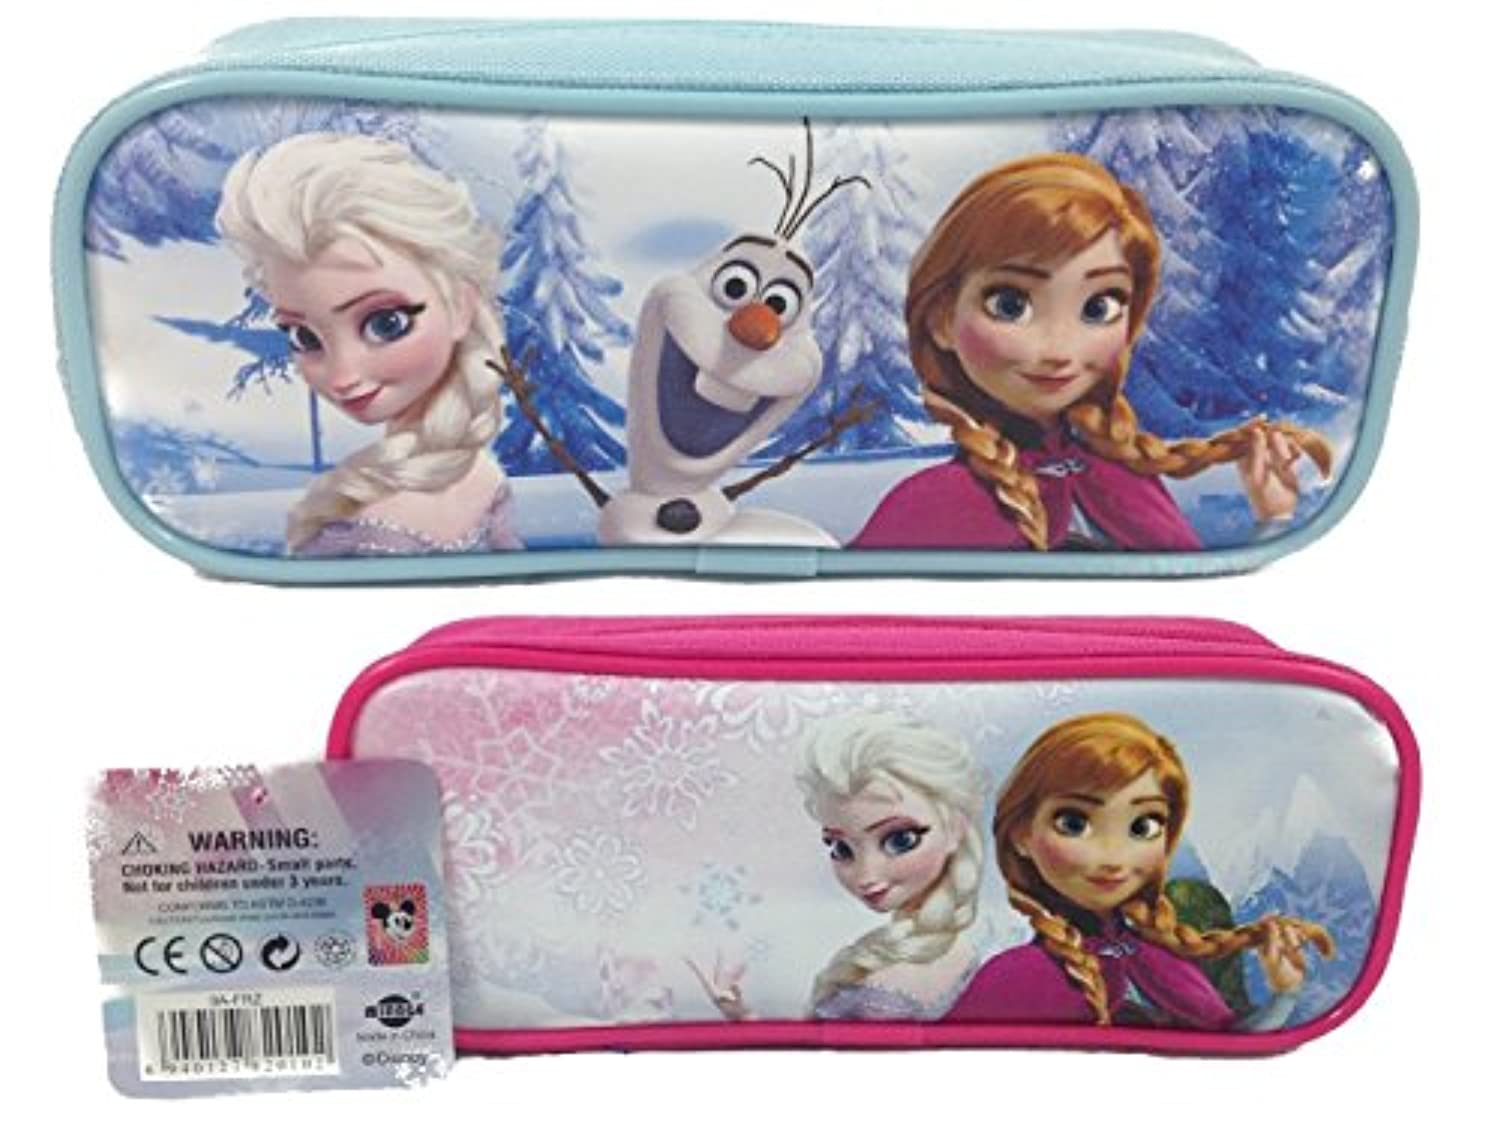 [5StarService]5StarService Frozen Elsa and Anna Single Zipper Pouch Pink and Blue Pencil Case, 2Pack [並行輸入品]